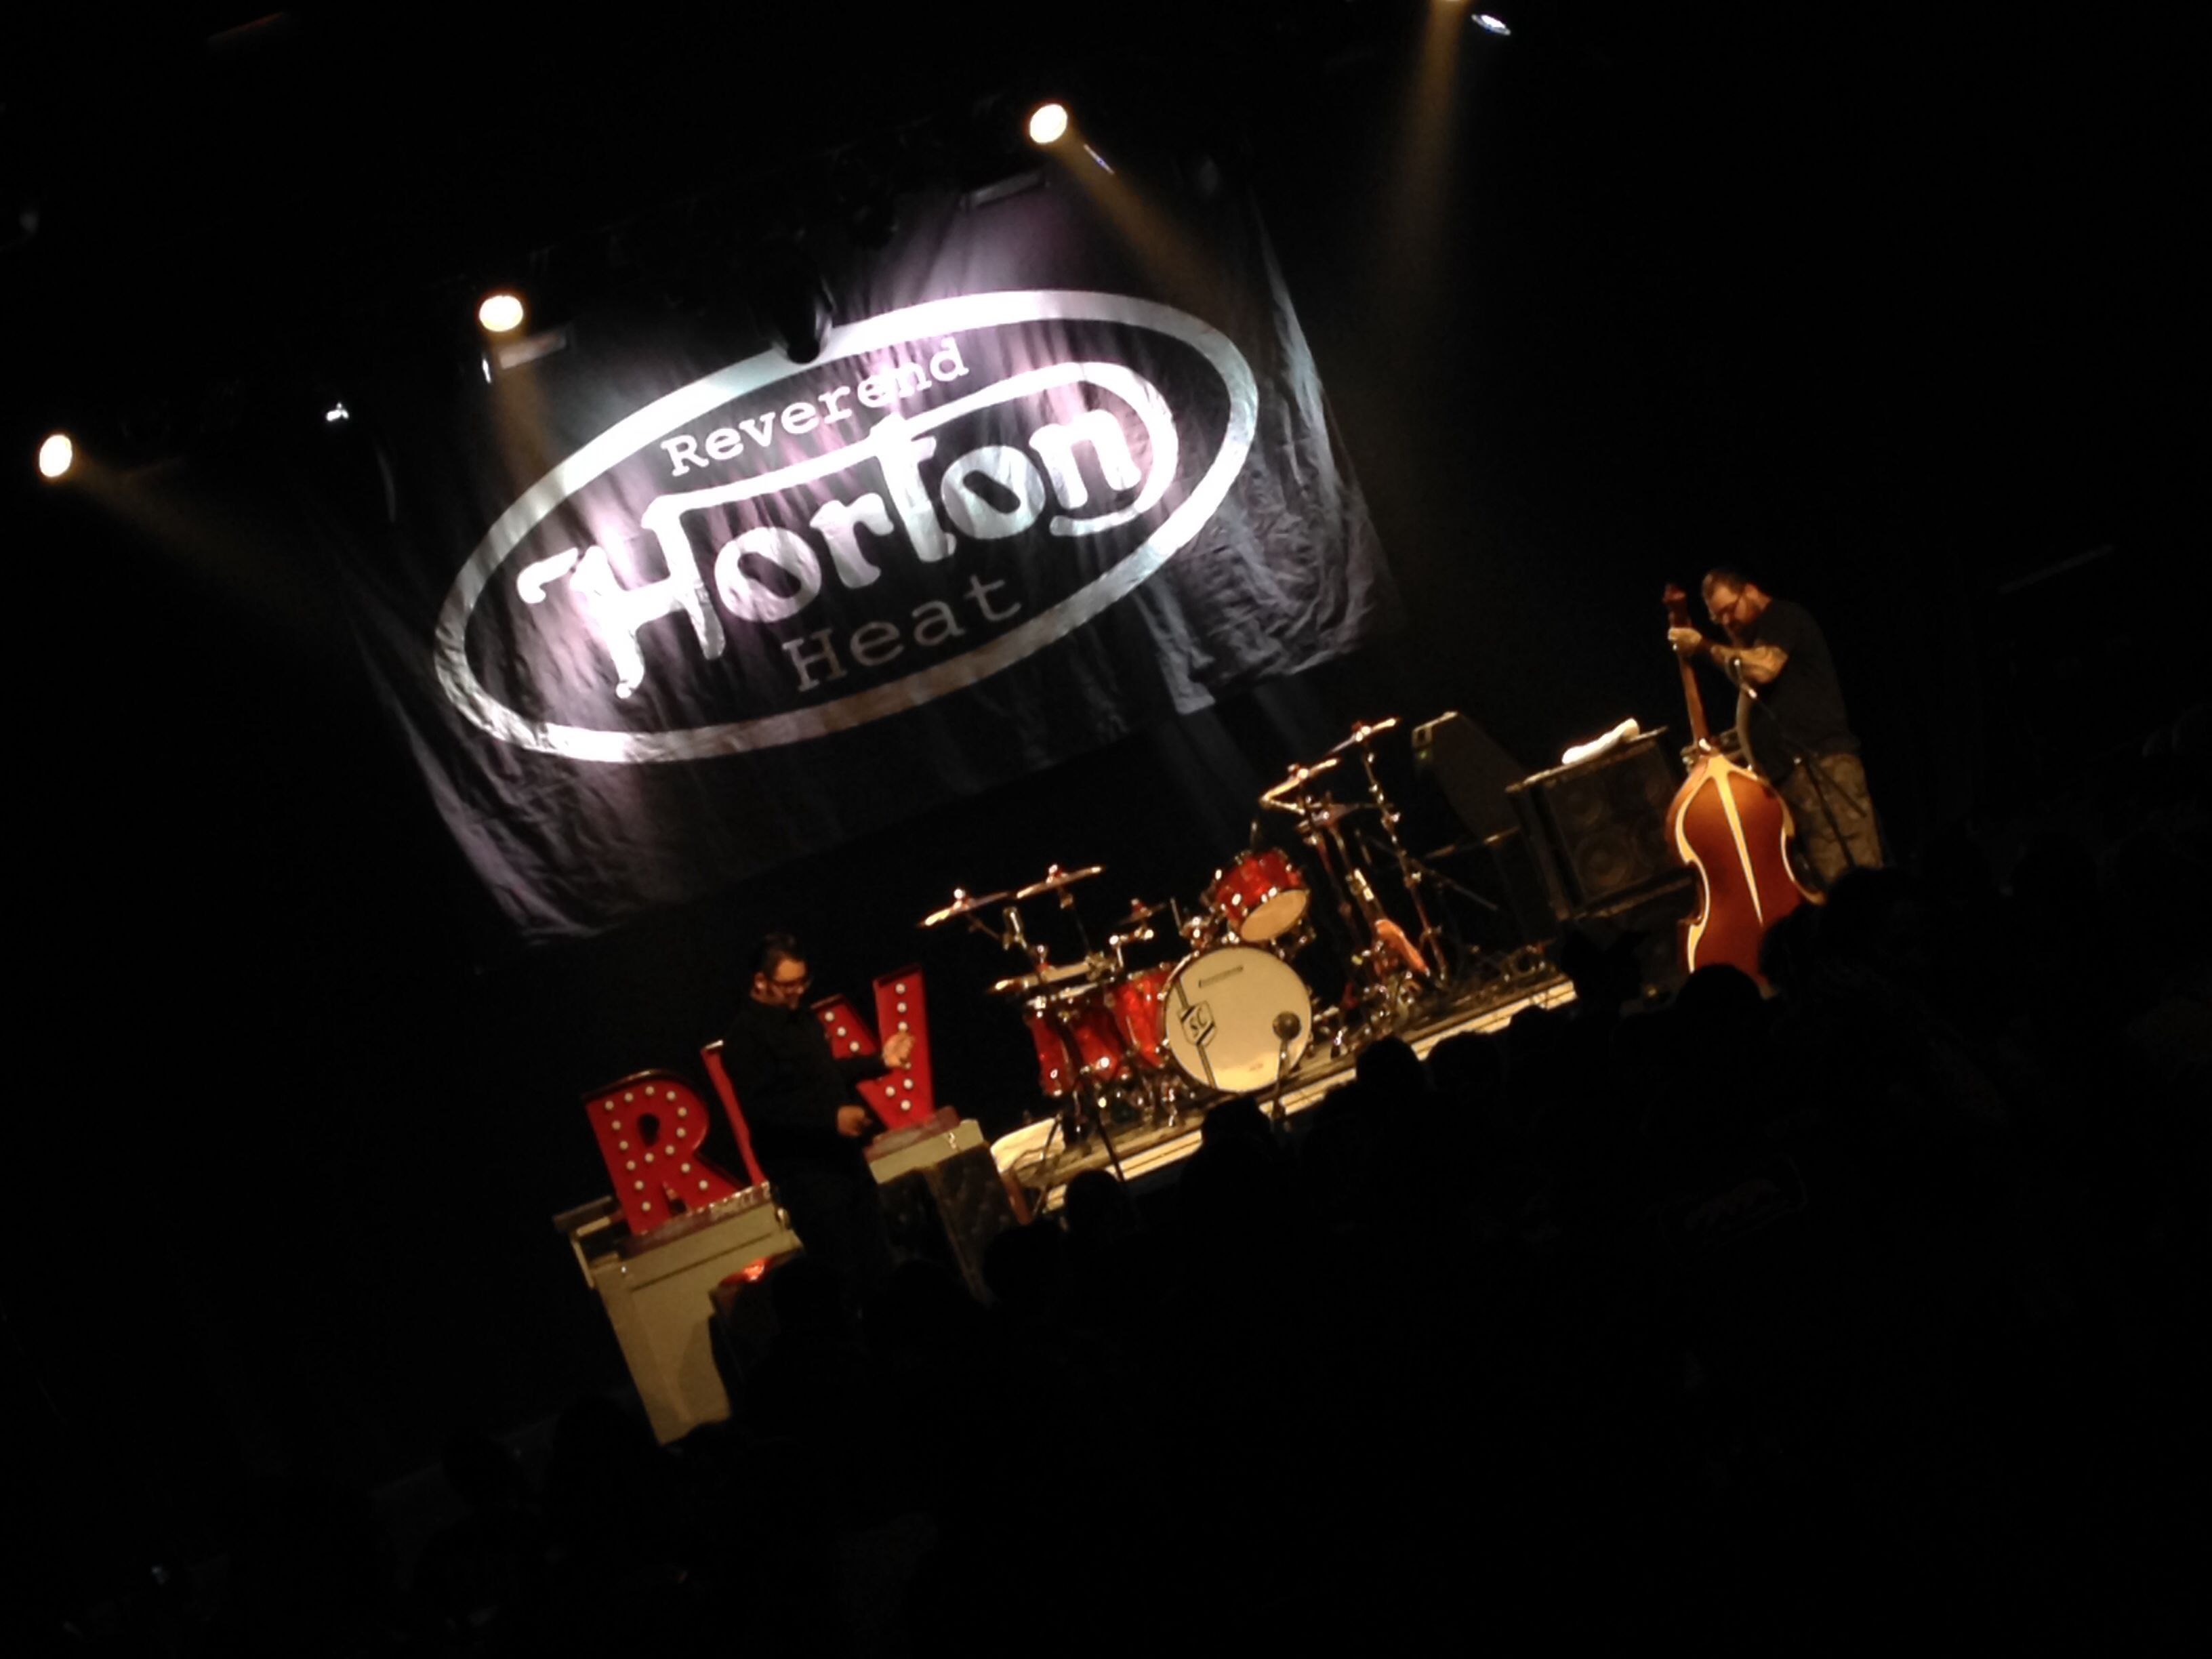 #ReverendHortonHeat